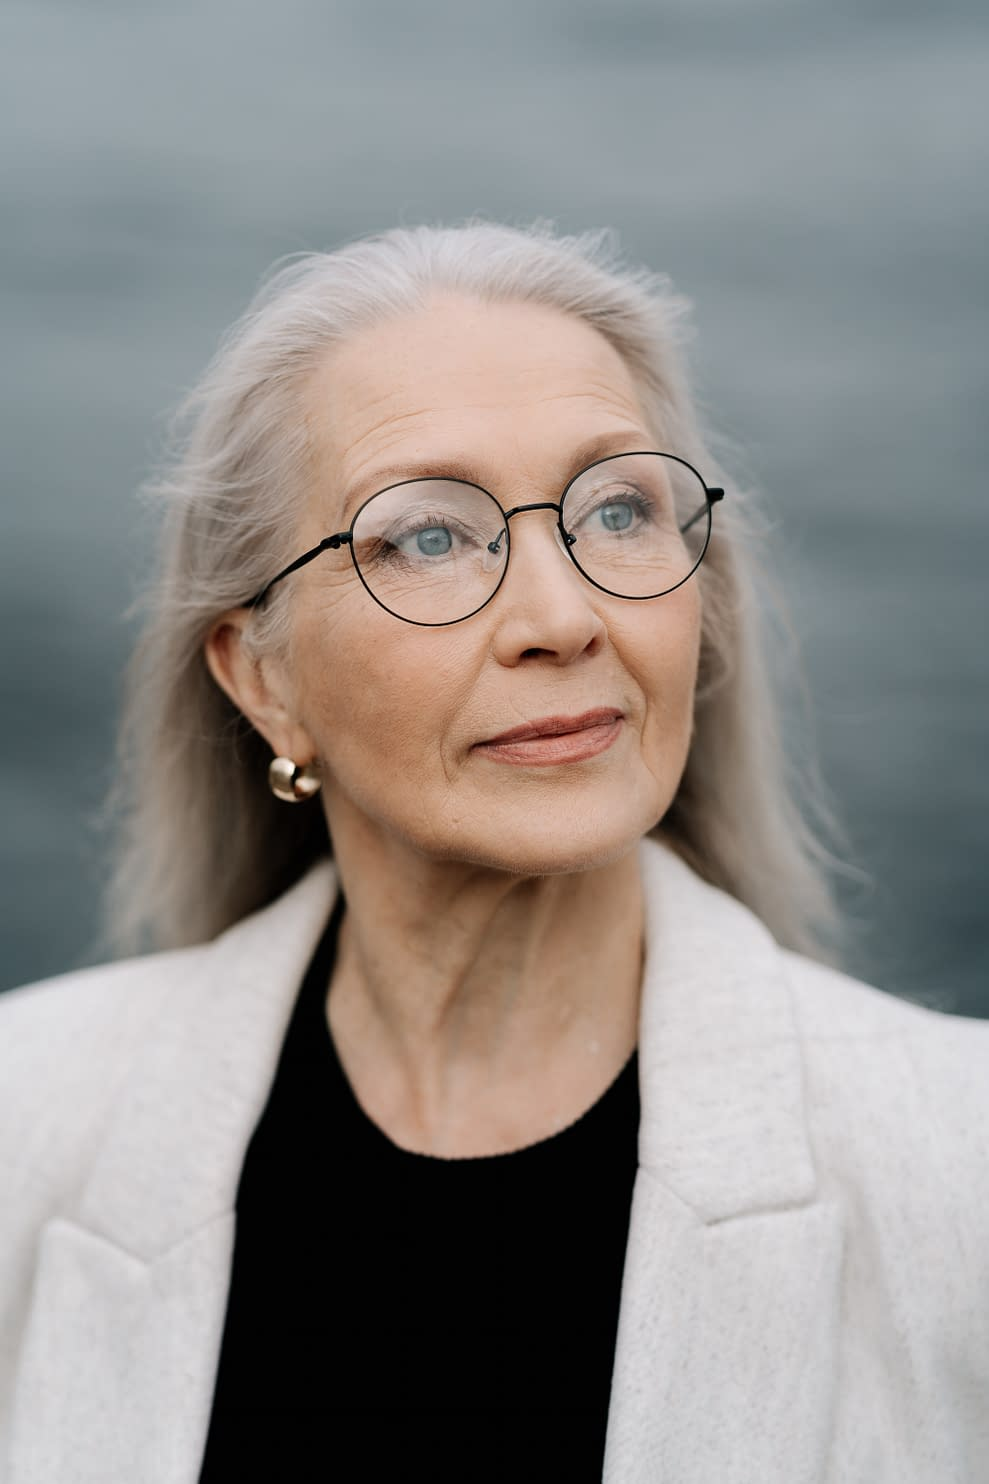 older woman, grey hair with glasses